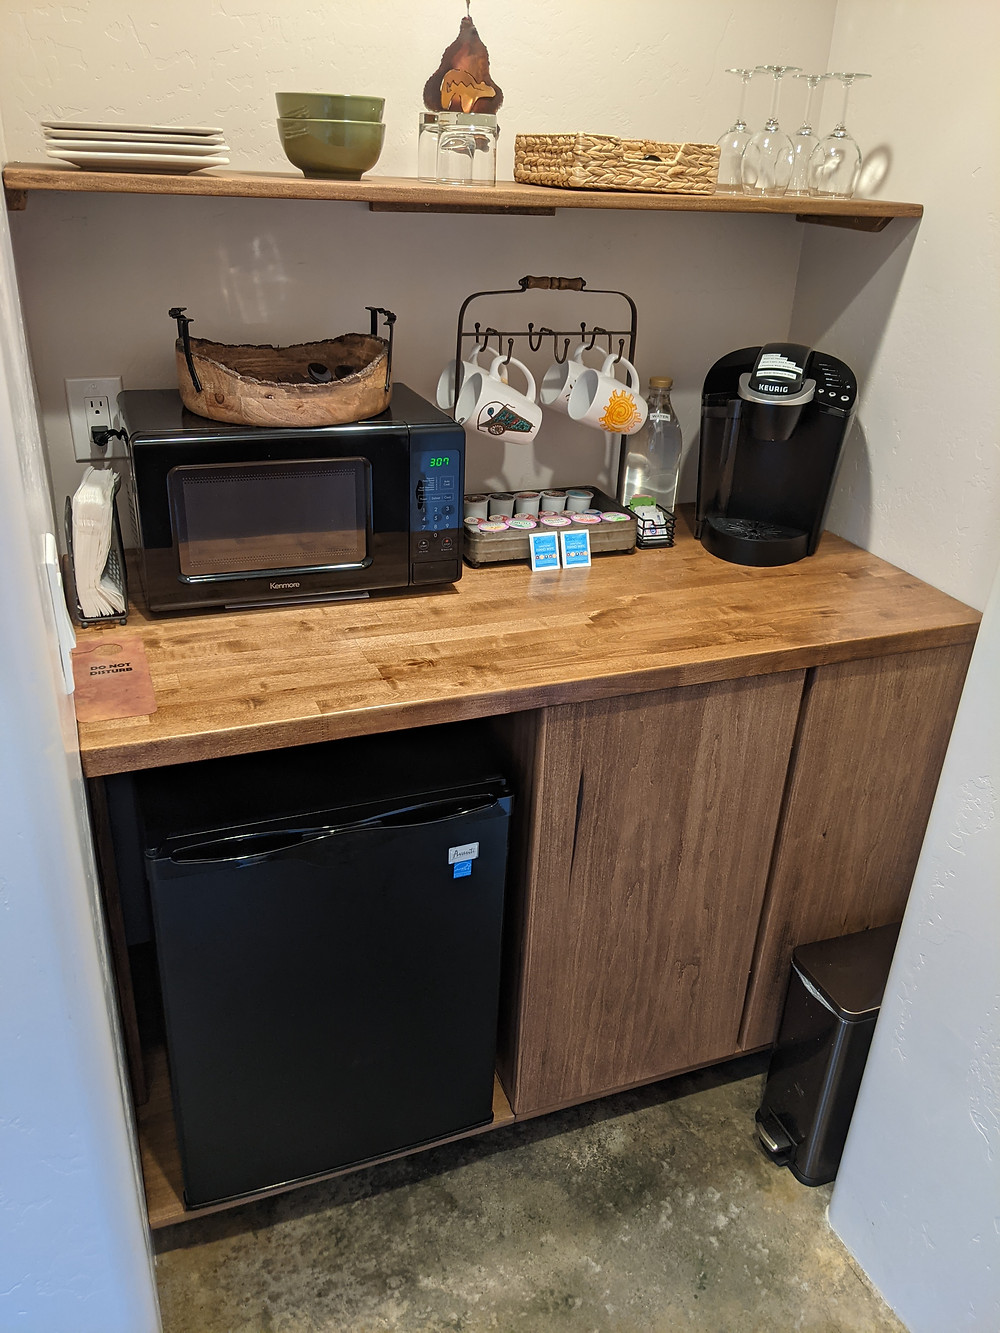 Wood cabinet holds a microwave, coffee maker and coffee mugs, with a refrigerator below. Arranged on the shelf above are plates and glasses.